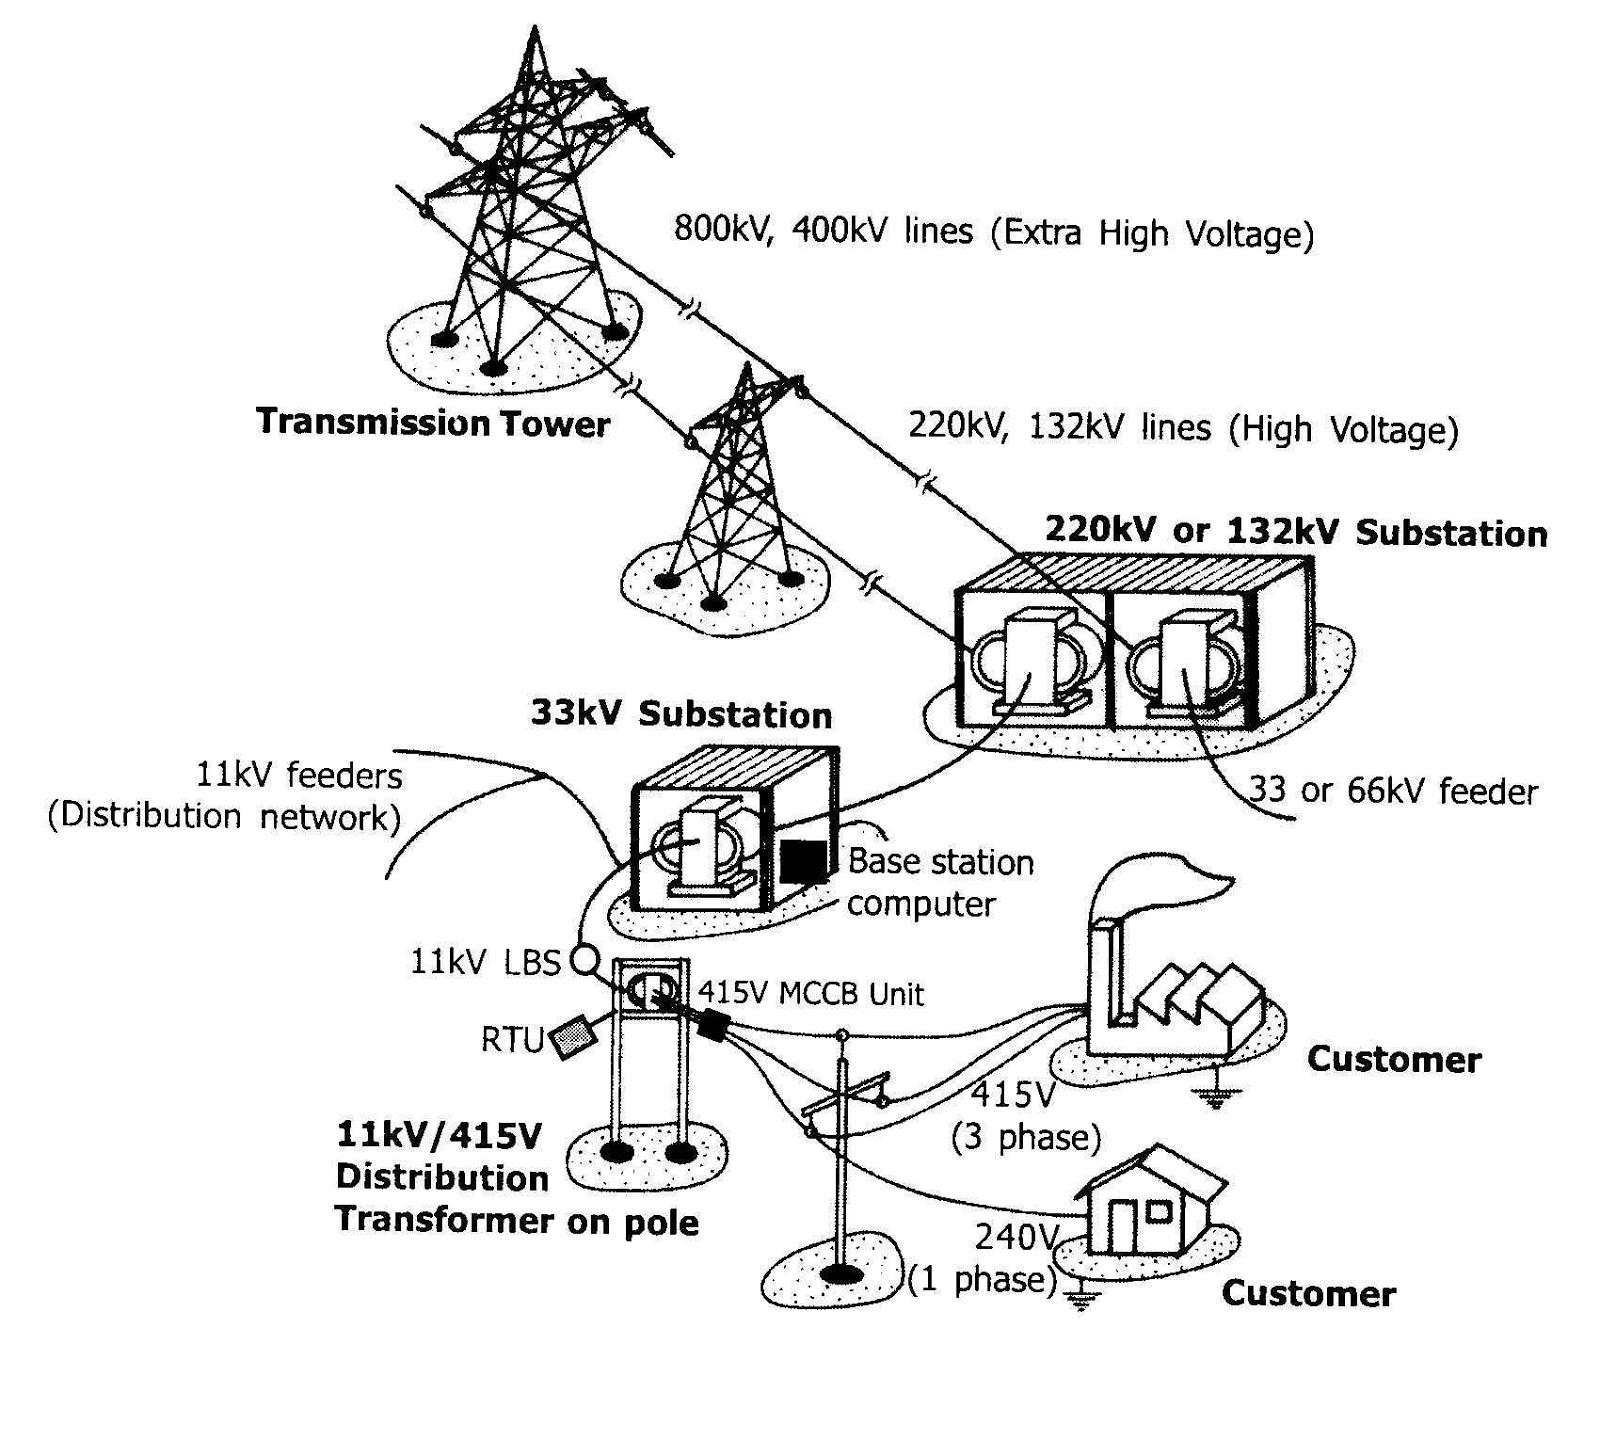 Power Distribution Present Scenario Diagram Of Sub Transmission Typical And